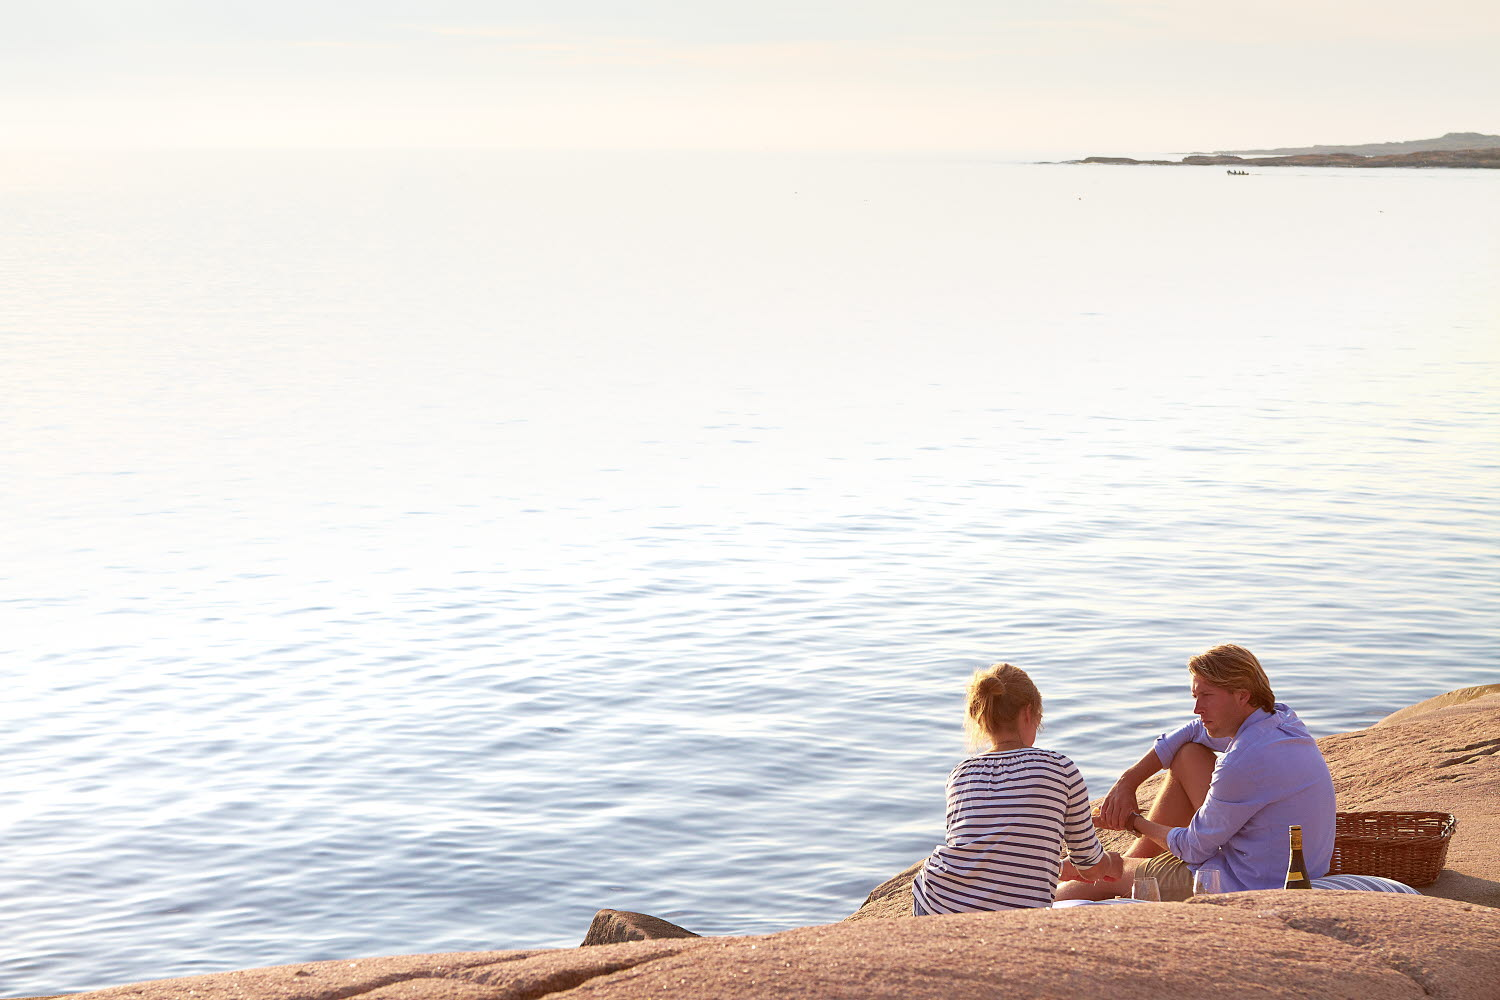 Couple having a picnic by the sea on the cliffs - Photo cred Jonas Ingman